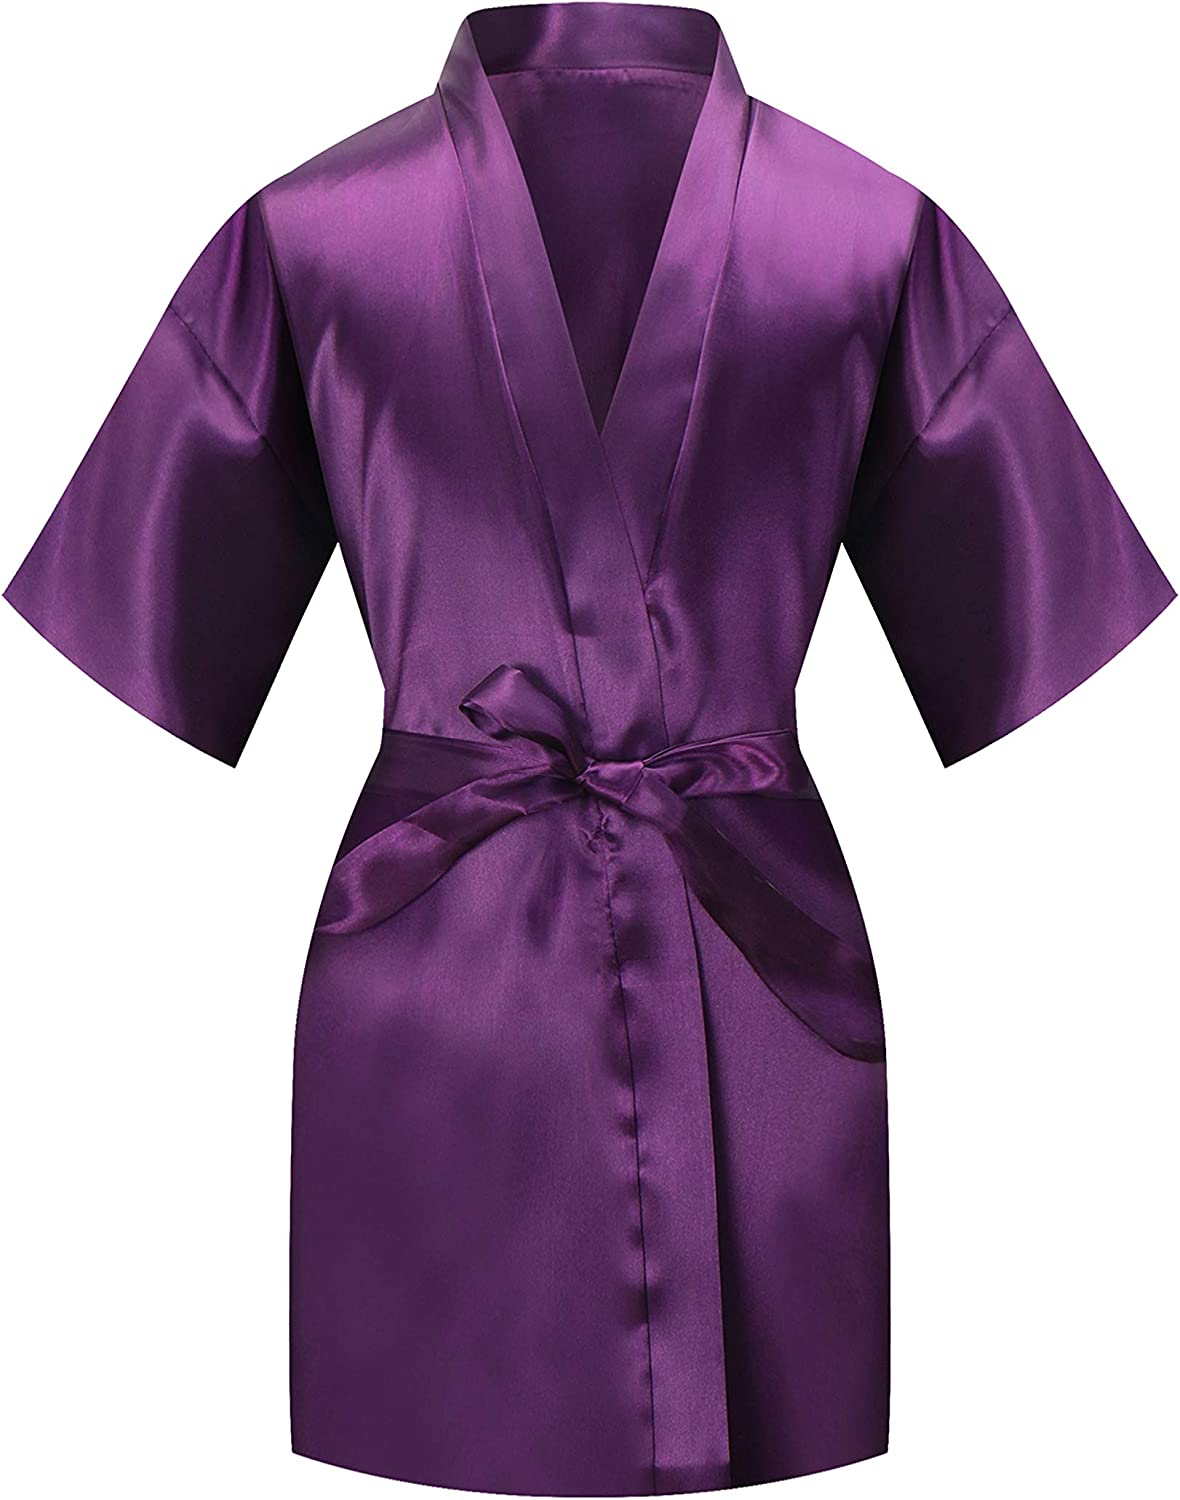 SEALINF Flower Girls Bridesmaid Pure-Colored Robe with Gold Glitter for Bridal Party Wedding Getting Ready